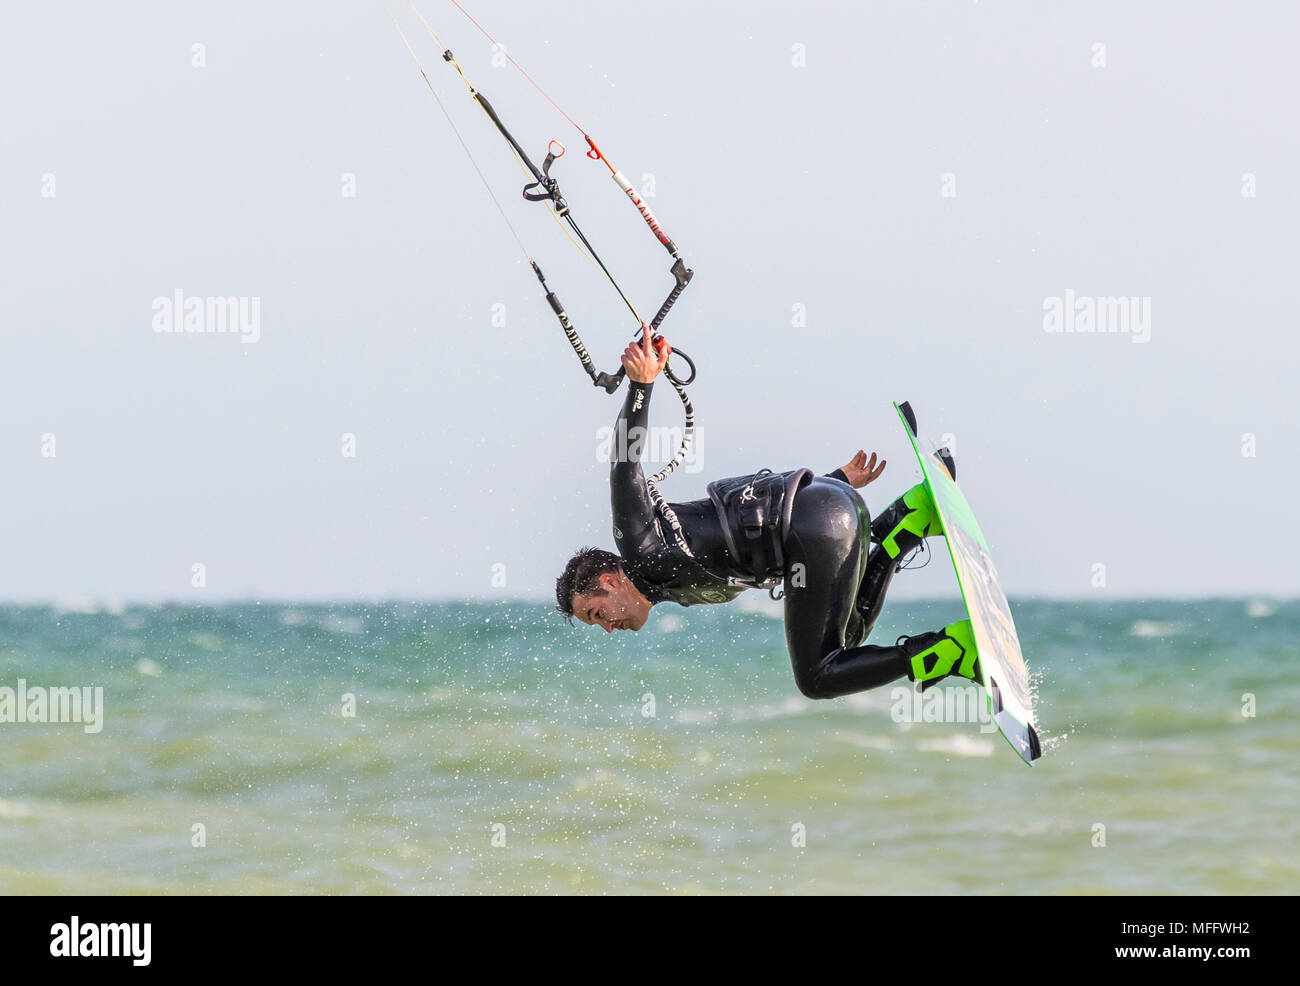 Man kitesurfing at sea while in the air in a spin, holding on with one hand. Kitesurfer on the ocean. - Stock Image